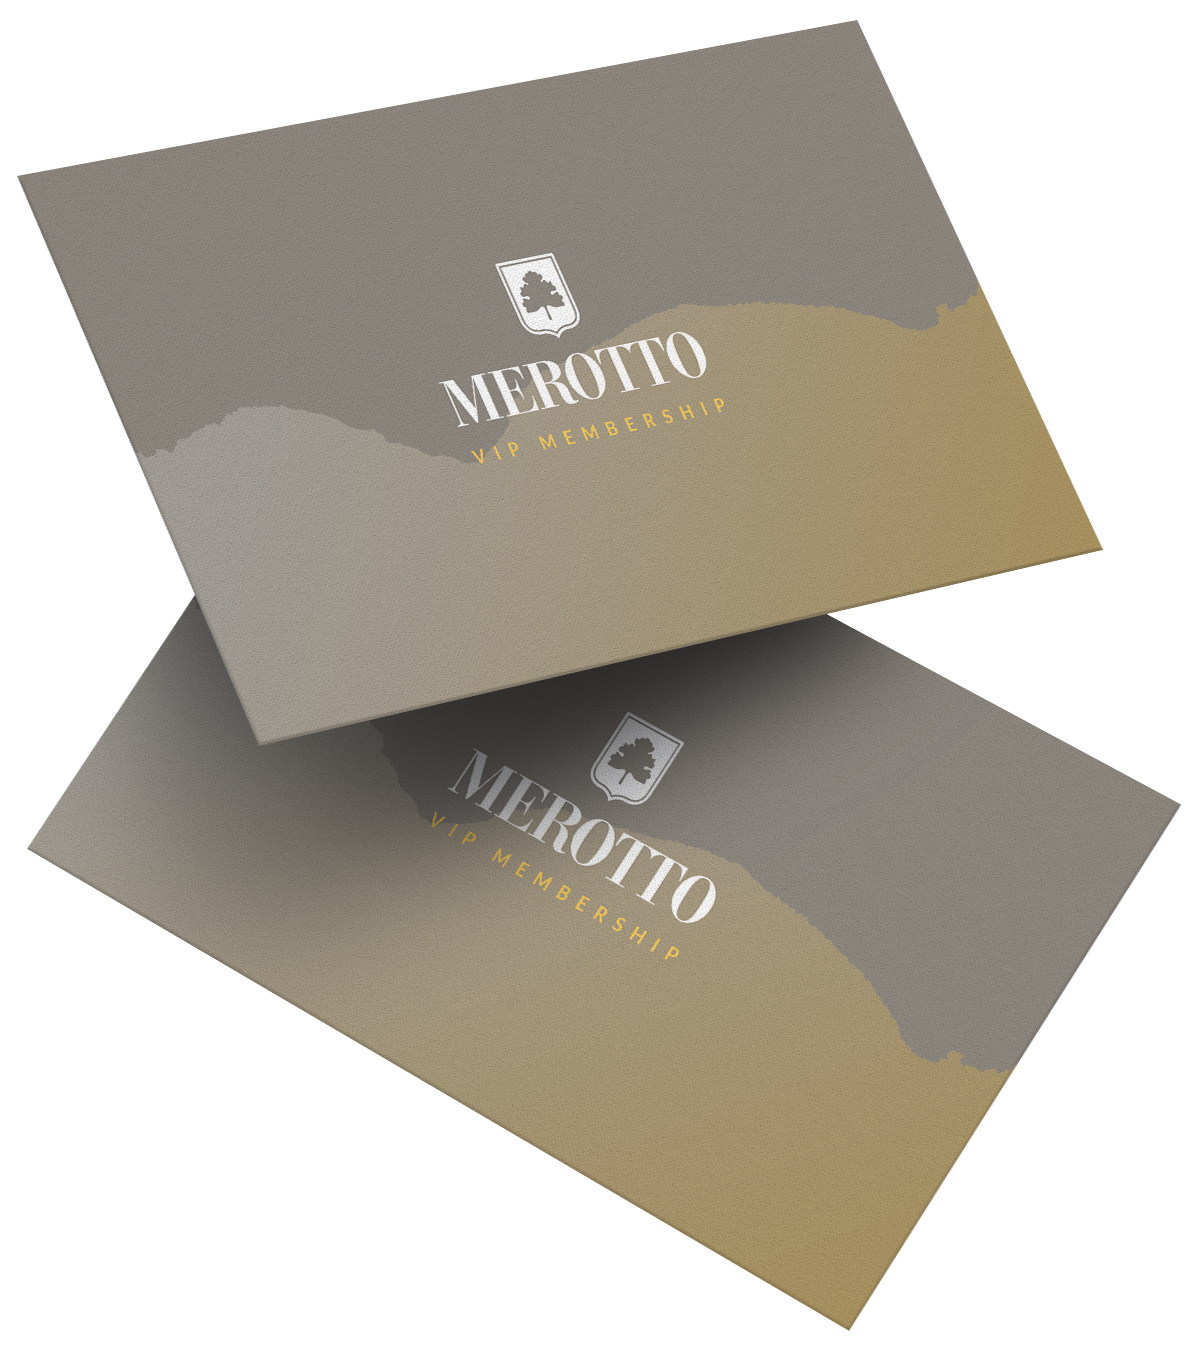 Merotto Wine Club - Free-Floating-Business-Card-Mockup